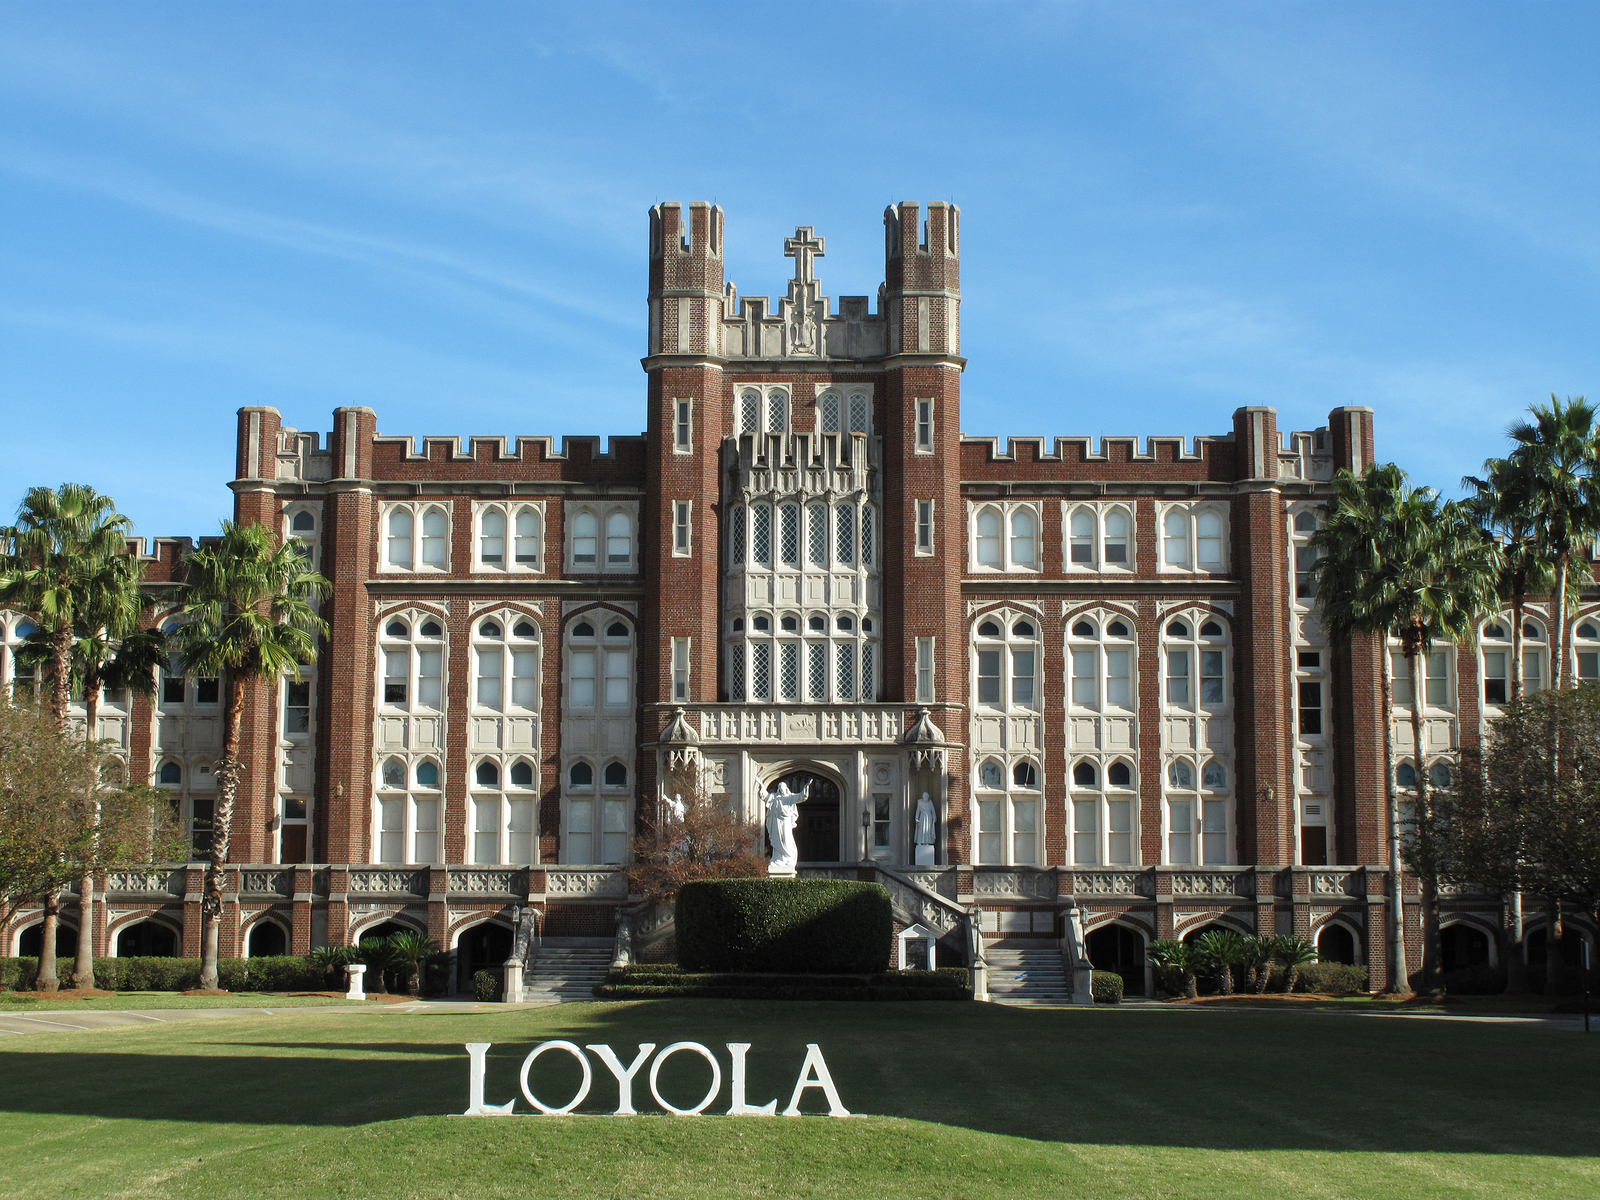 Loyola University campus in Uptown New Orleans, Louisiana